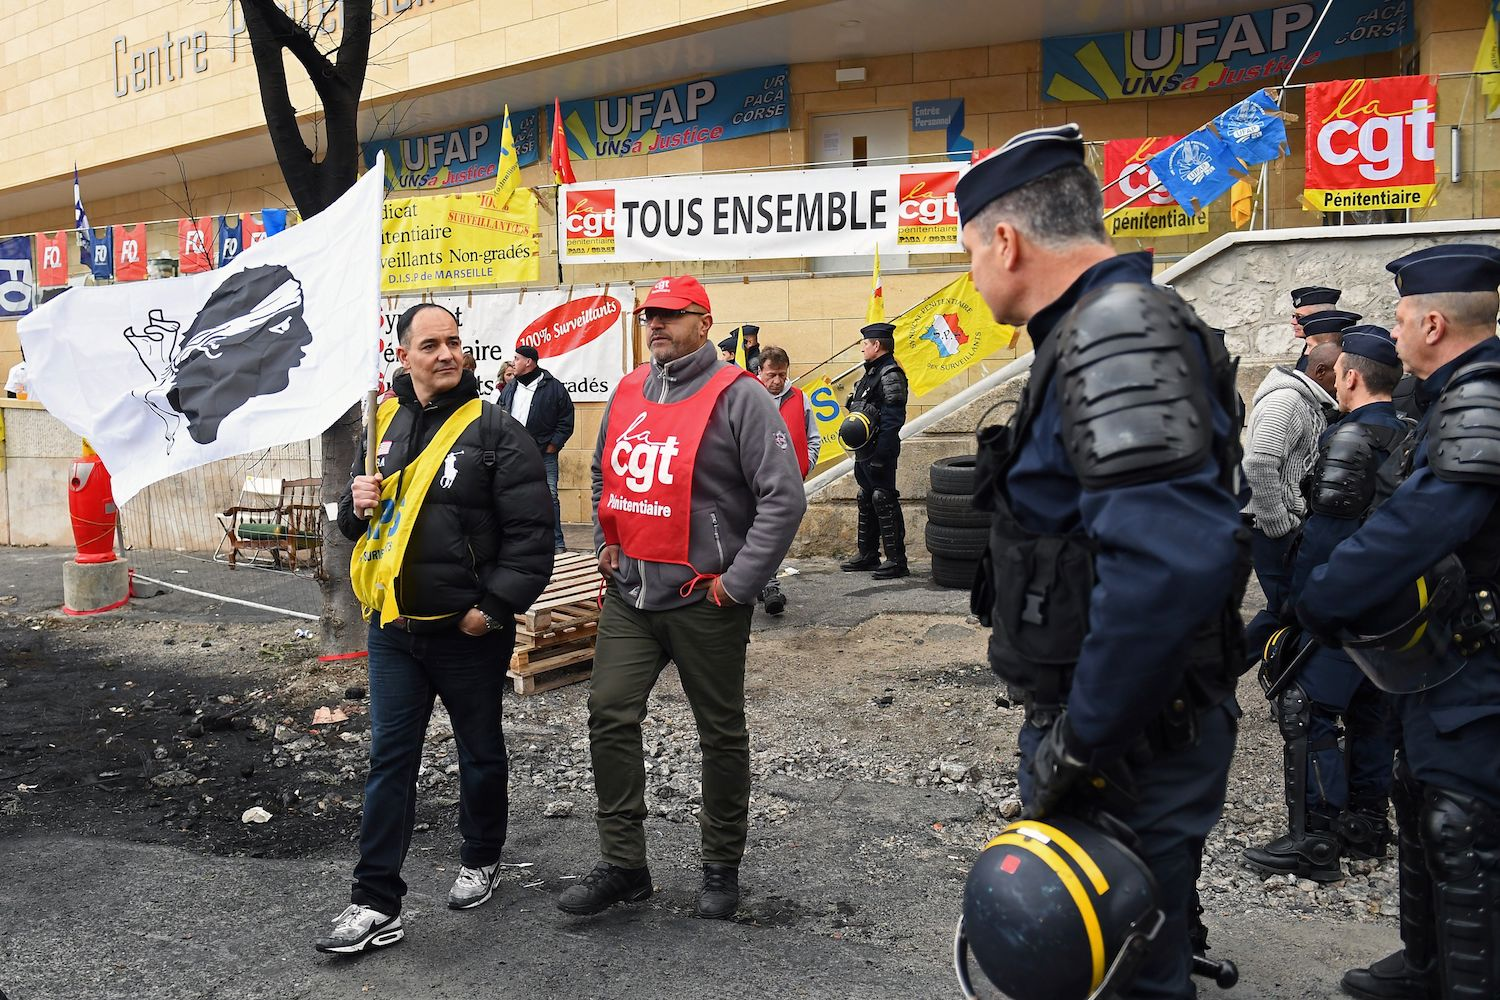 French gendarmes arrive to clear the access to the Baumettes Prison (Centre penitentiaire de Marseille) as a participant holds the Corsican flag during a demonstration of prison officers in front of the prison in Marseille, southern France, on January 25, 2018, as part of a nationwide movement to call for better safety and wages.   / AFP PHOTO / BORIS HORVAT        (Photo credit should read BORIS HORVAT/AFP/Getty Images)